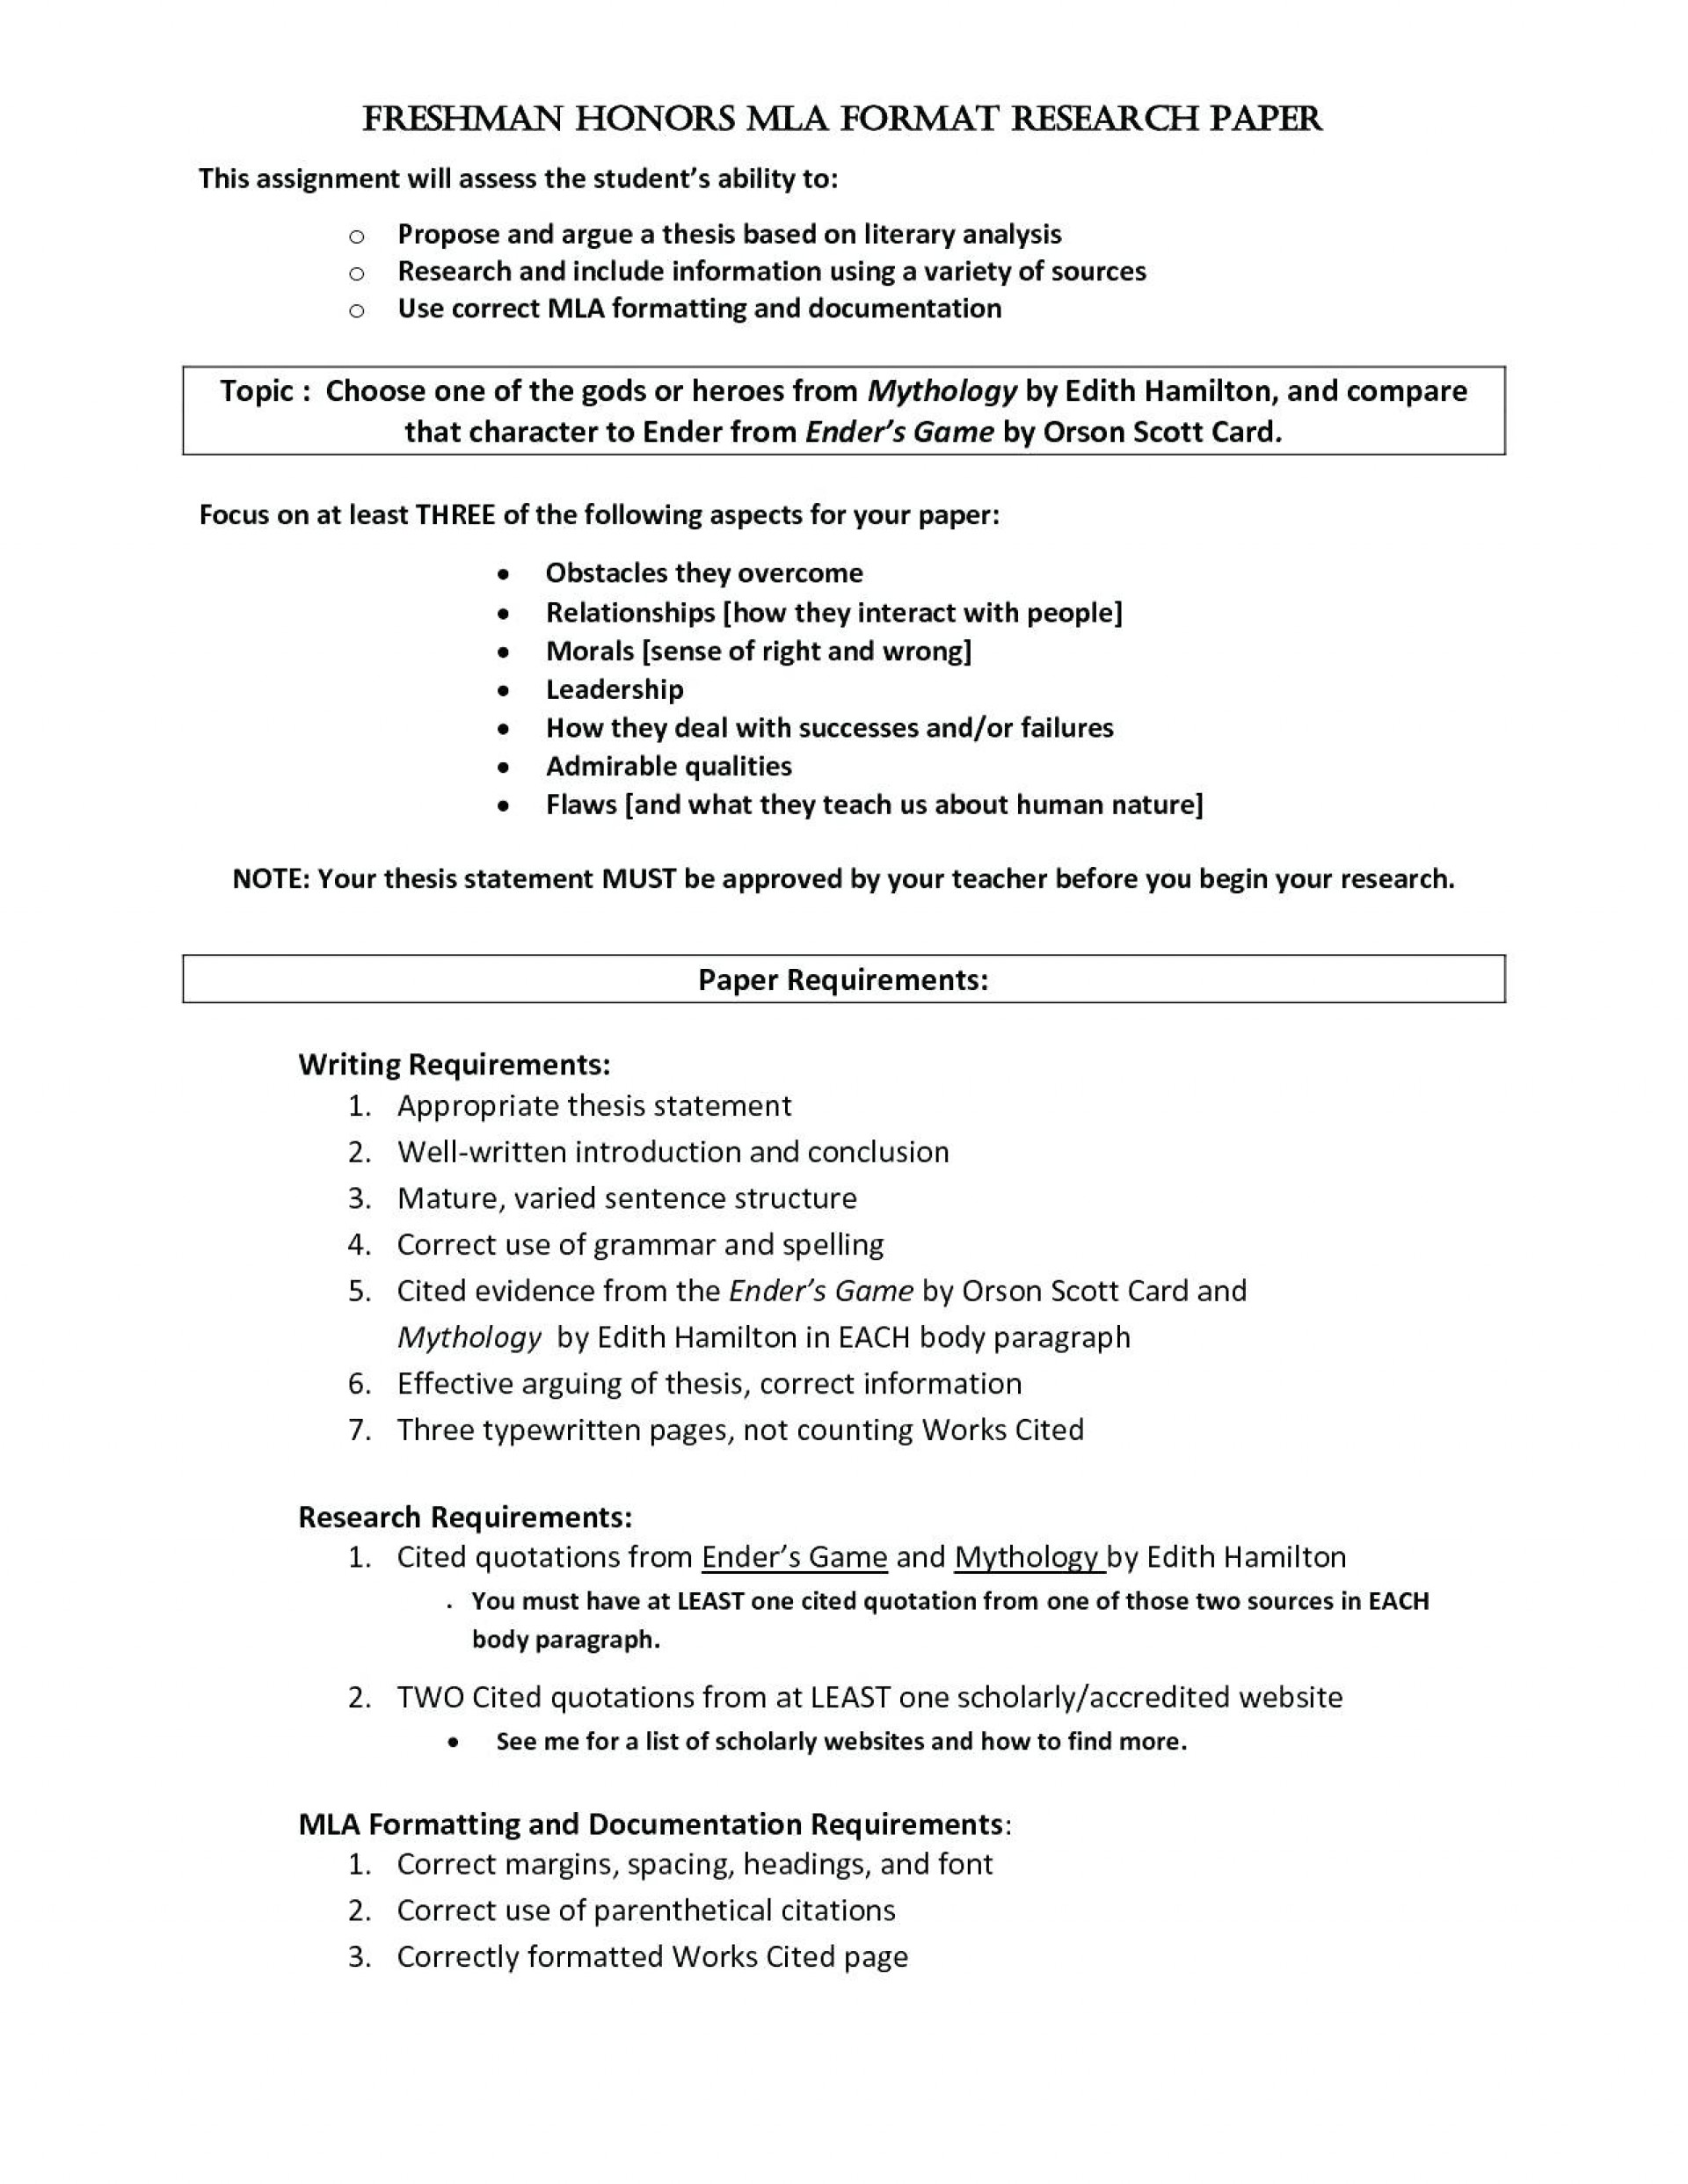 018 Work Cited Format Template Luxury Unique How To Quote In Wallpaper Site Mla Resume Wallpa Research Awesome Paper Outline Example 1920